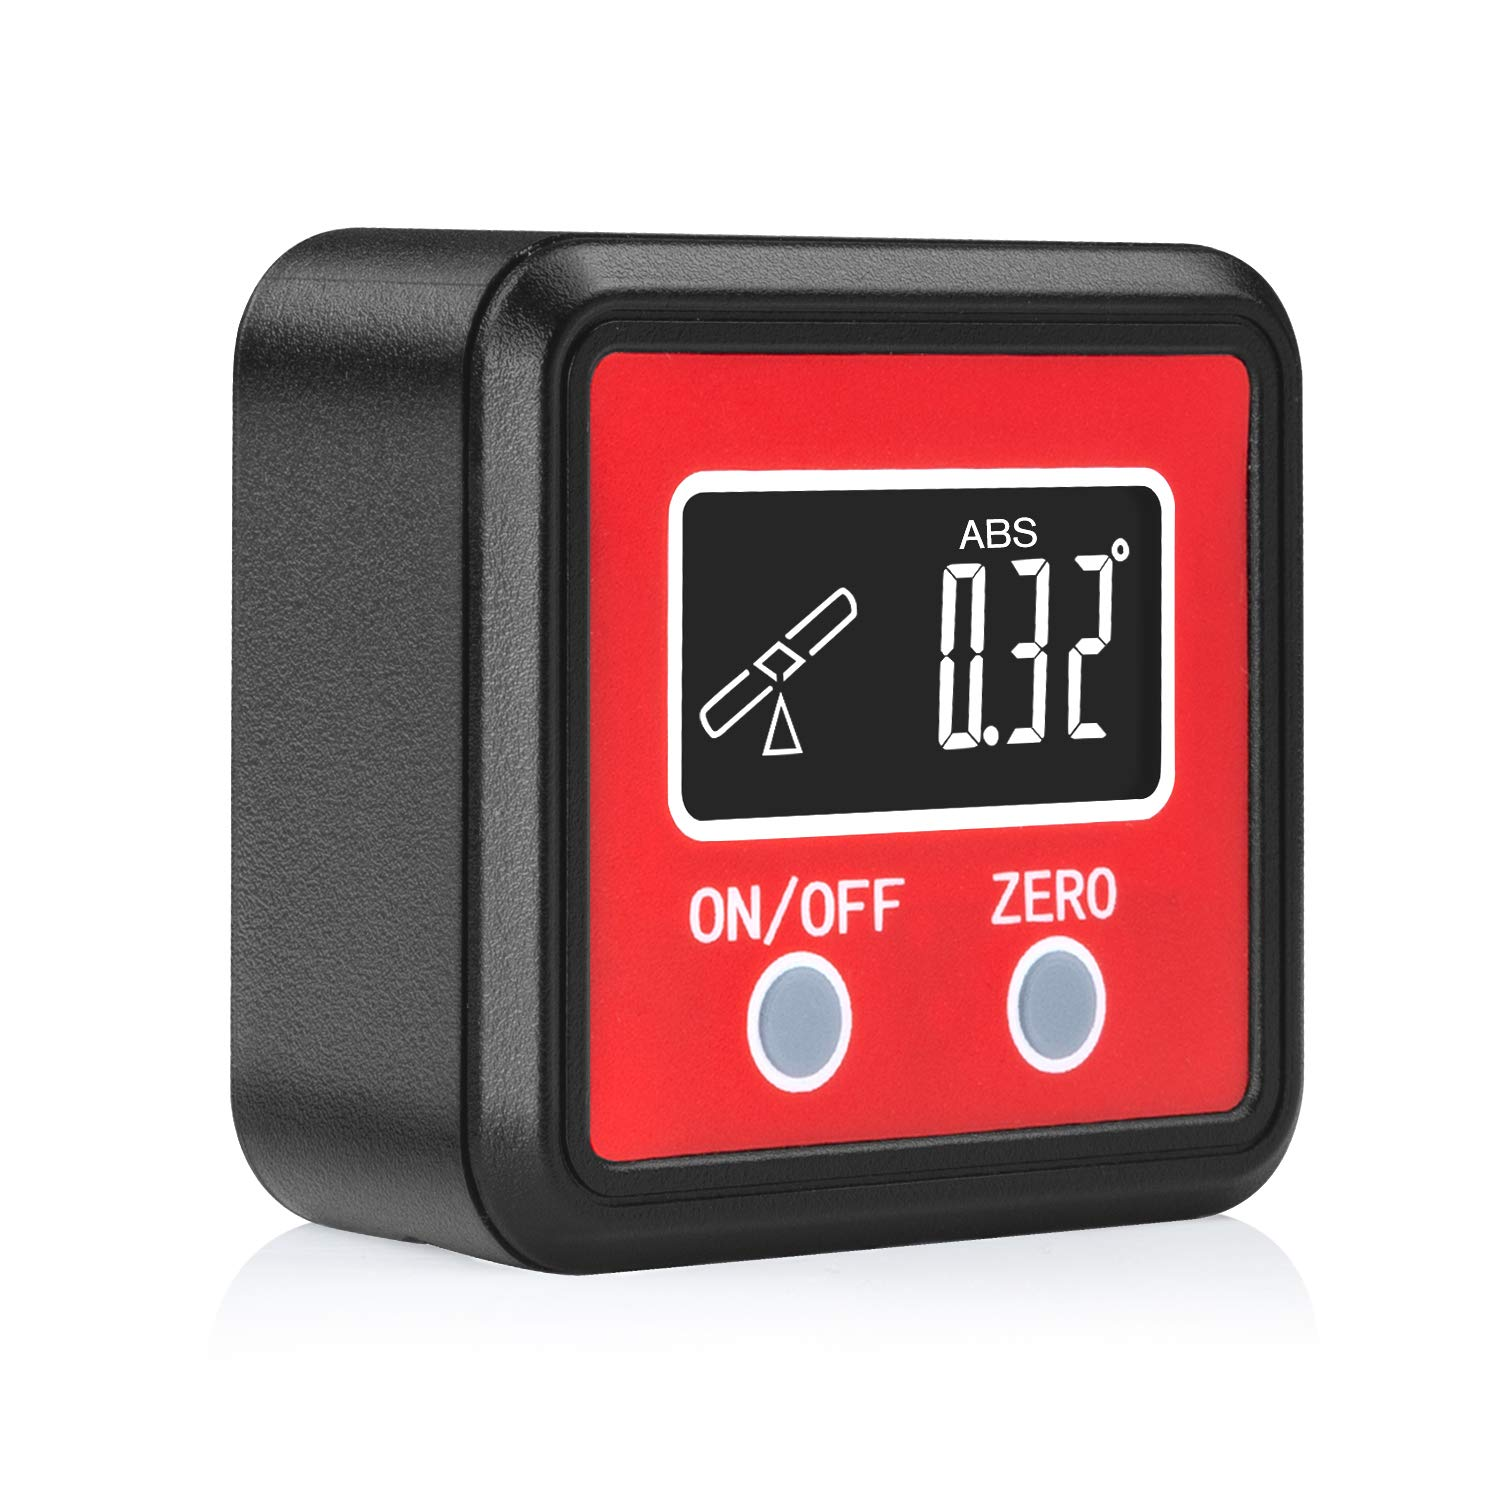 Joypea Magnetic Digital Angle Finder,Level Digital Angle Gauge,IP42 Dust and Waterproof Digital Inclinometer,Calculating for Carpentry,Building,Masonry-Red